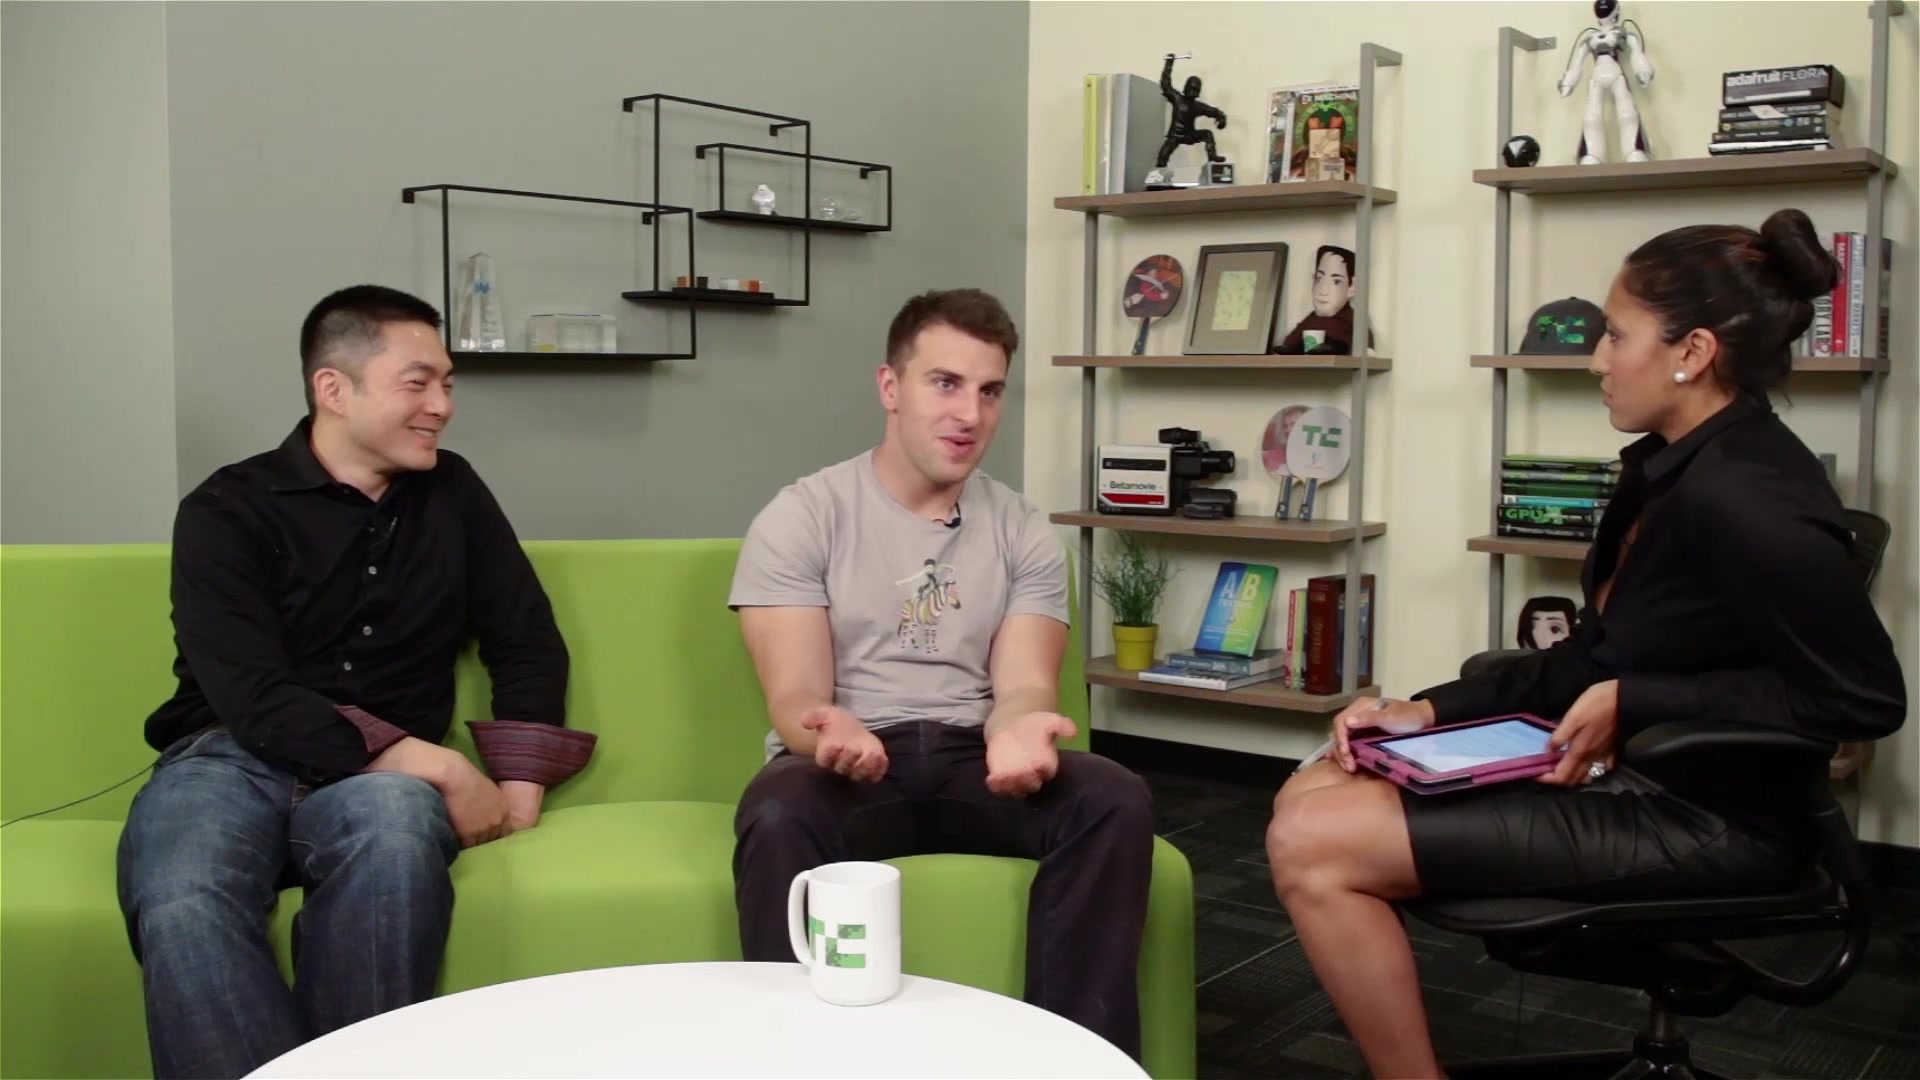 Airbnb Co-Founder On International Growth and Expansion